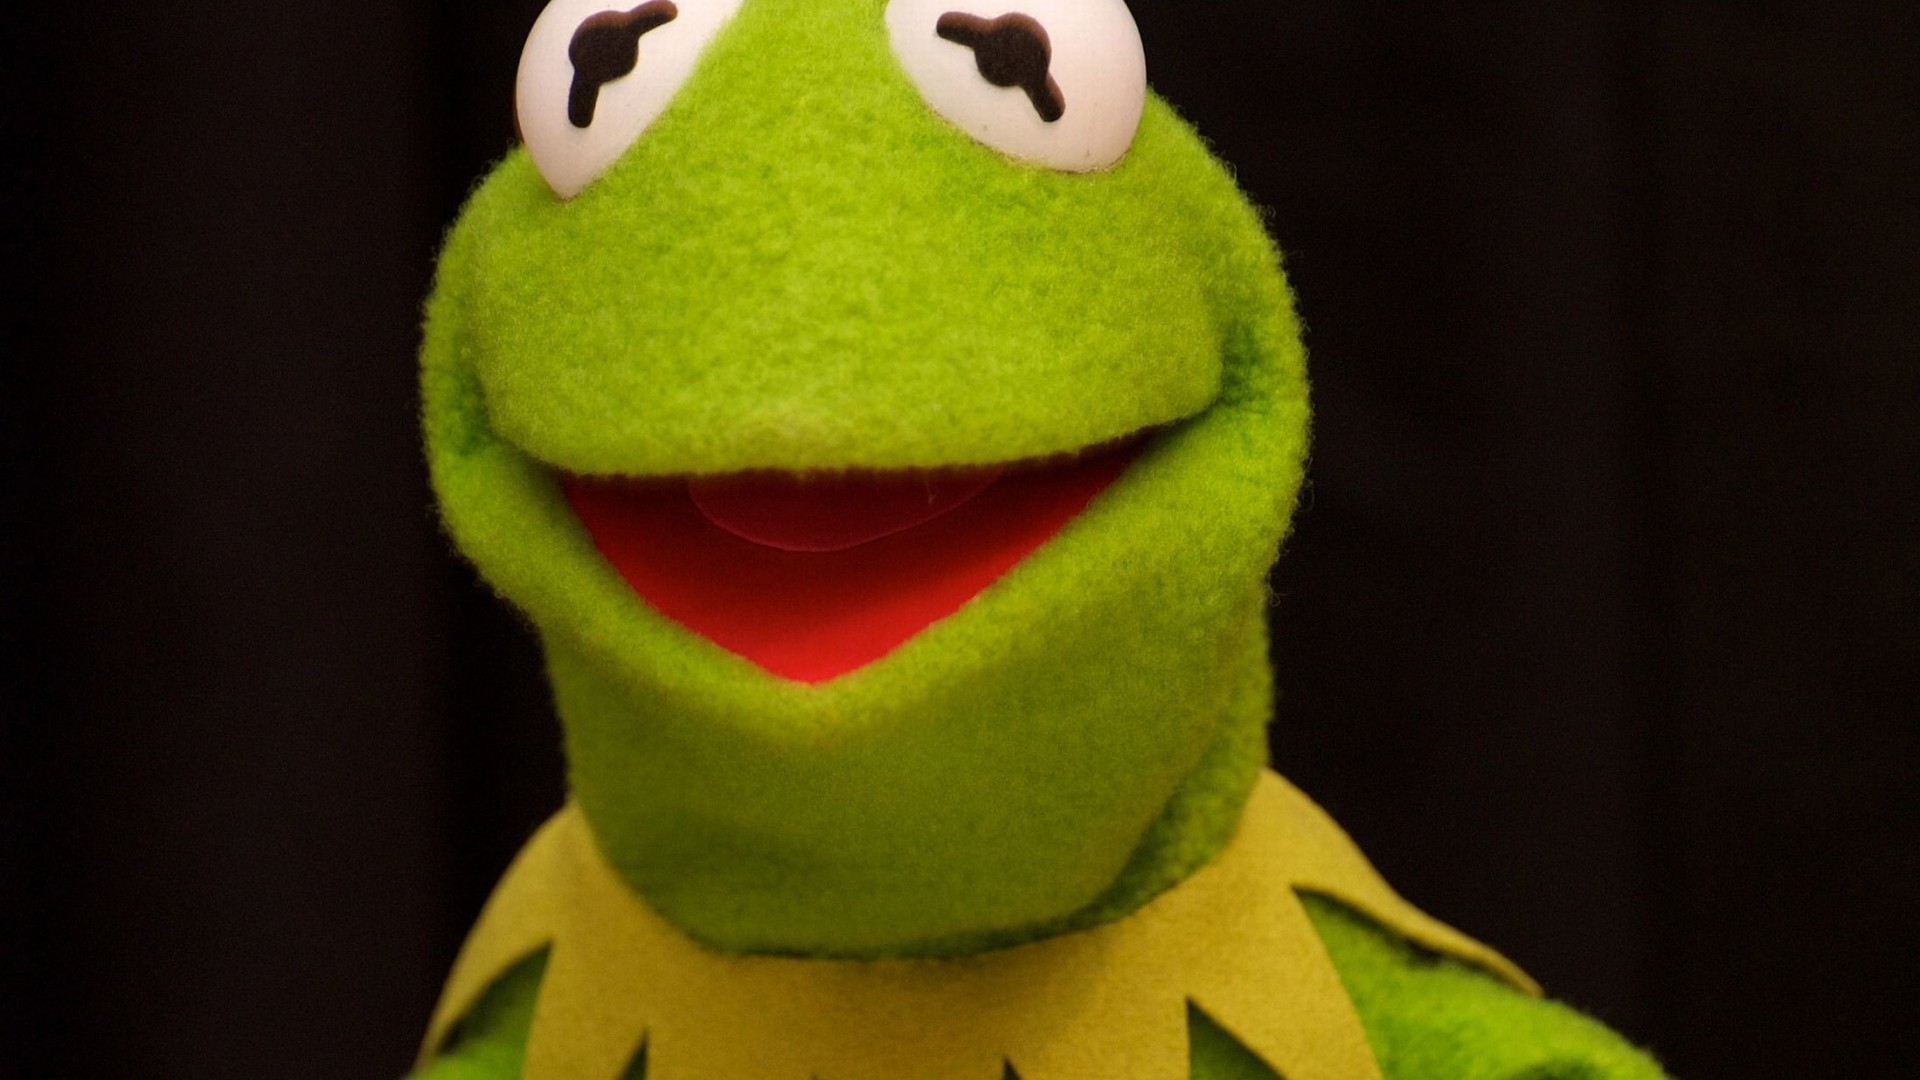 Hearts Kermit The Frog Background Wallpaper